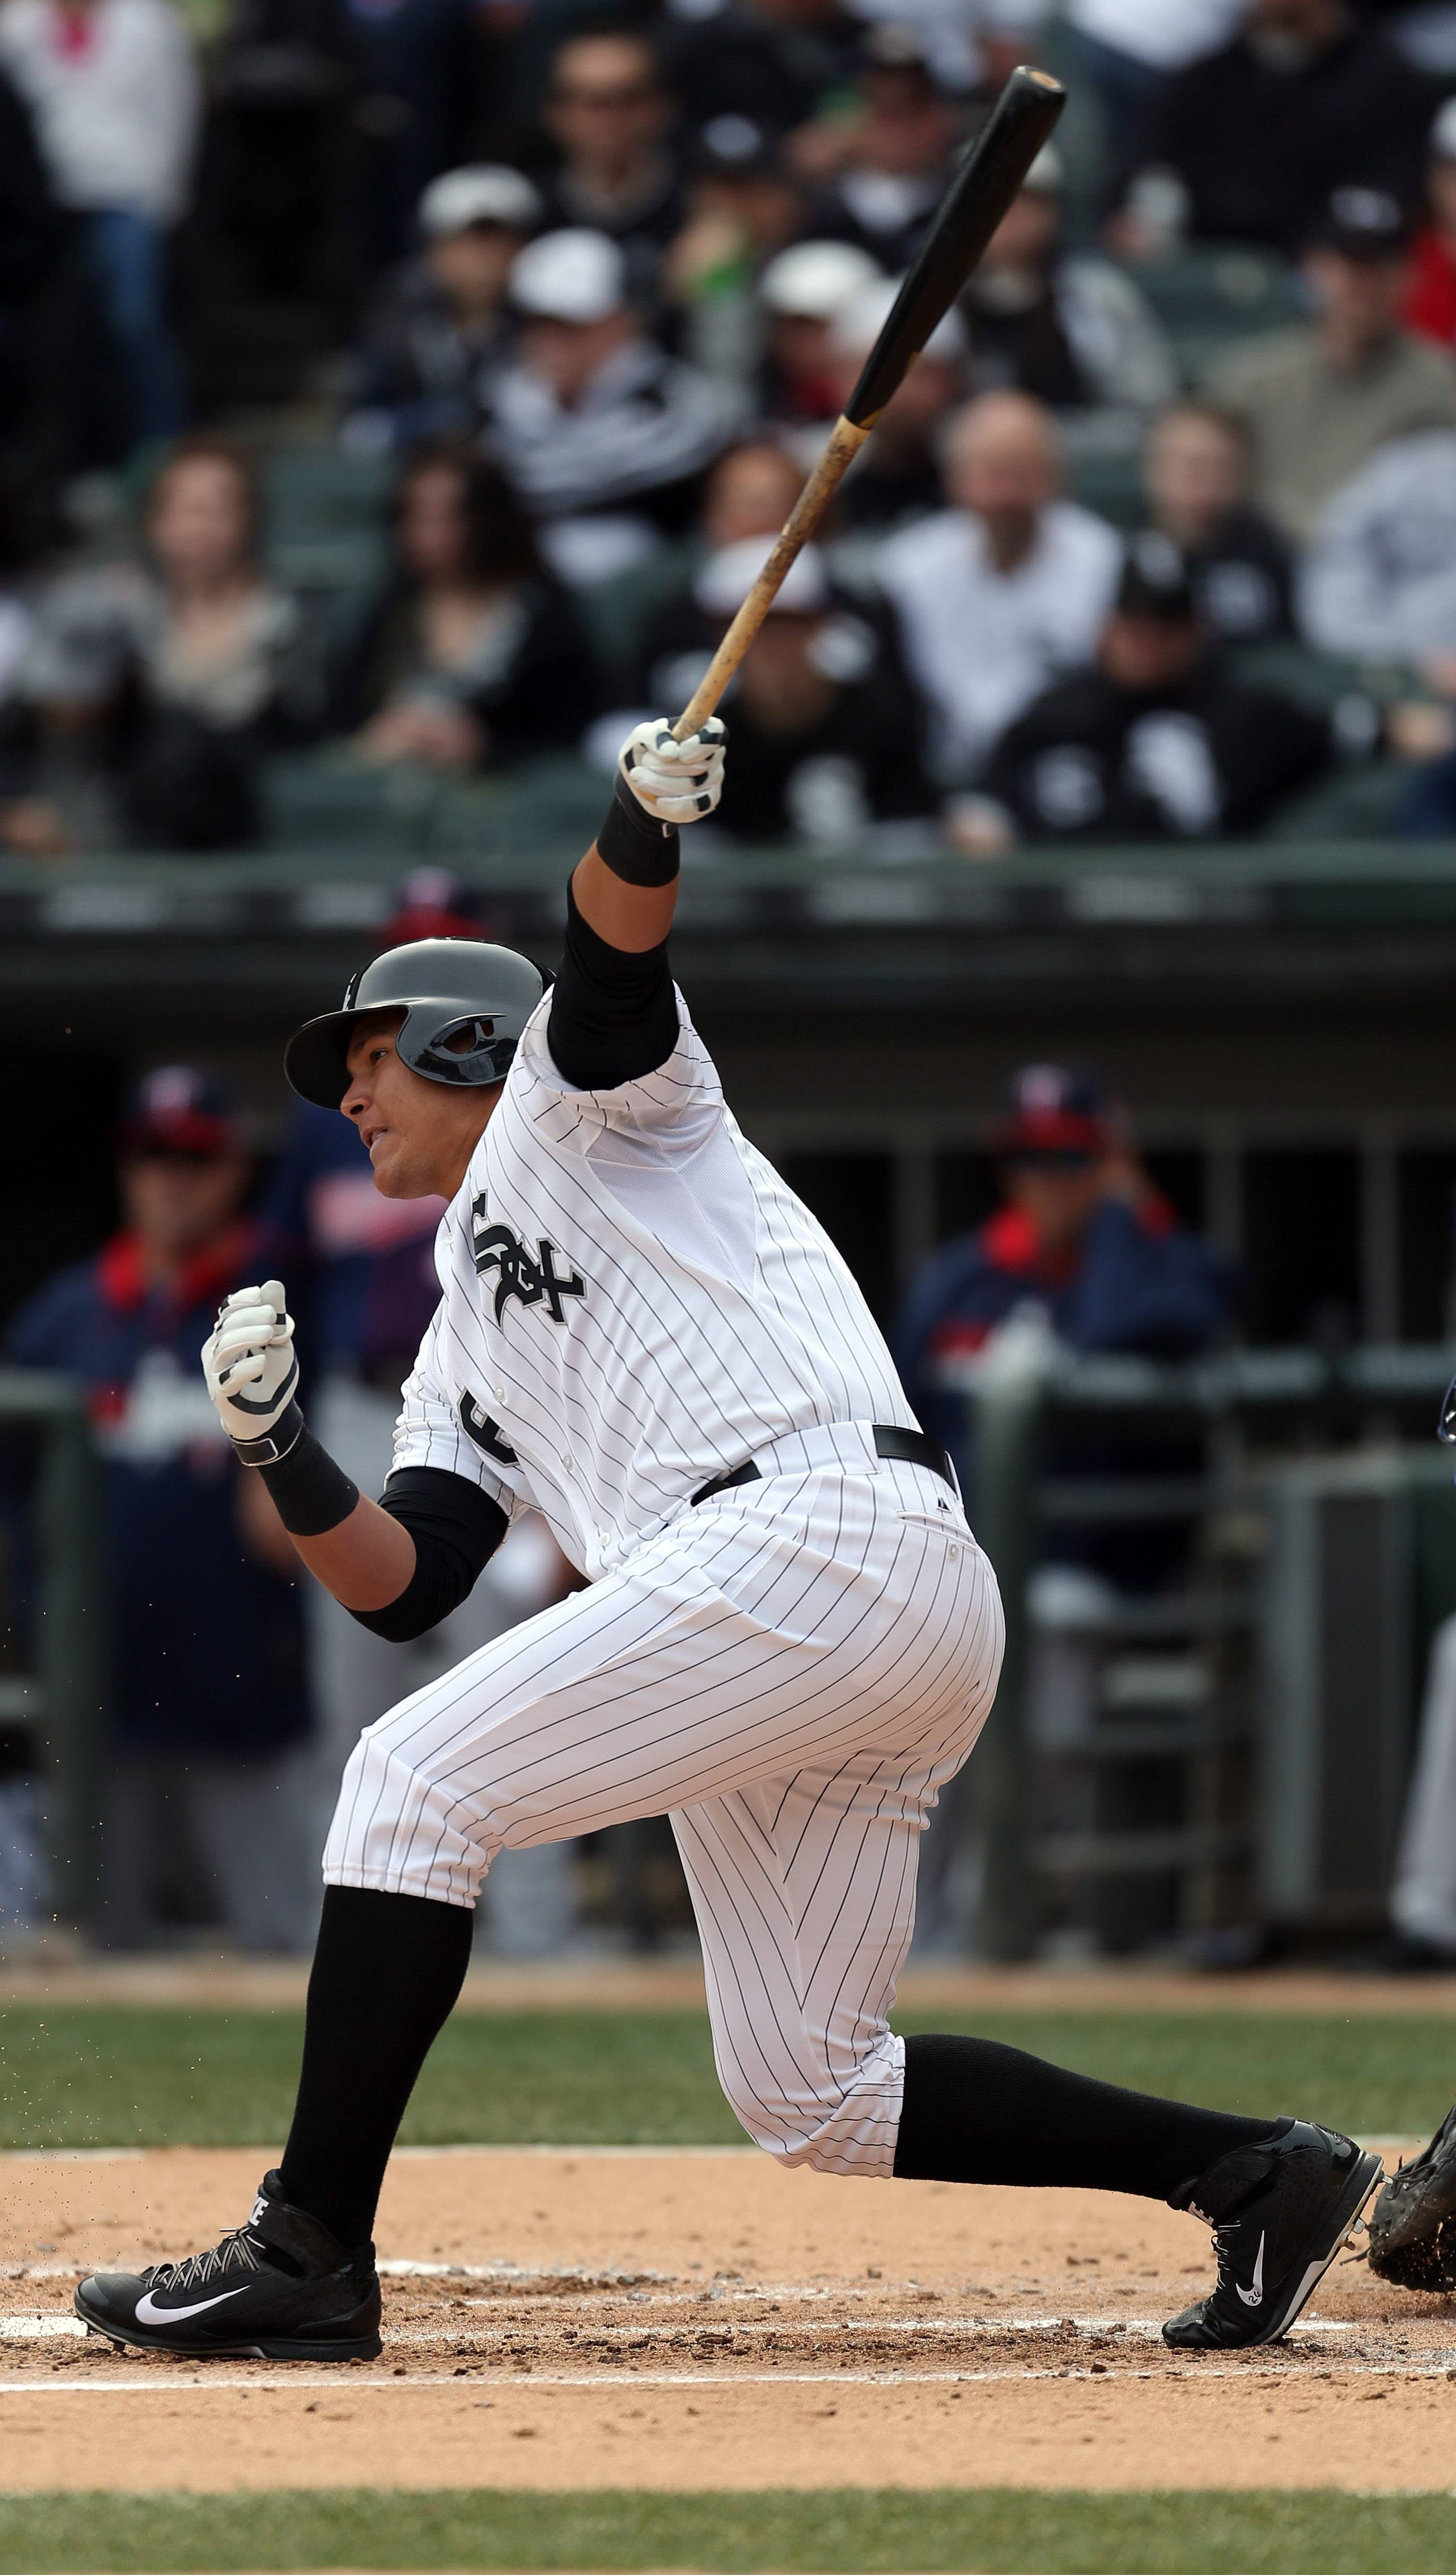 Chicago White Sox right fielder Avisail Garcia connects .